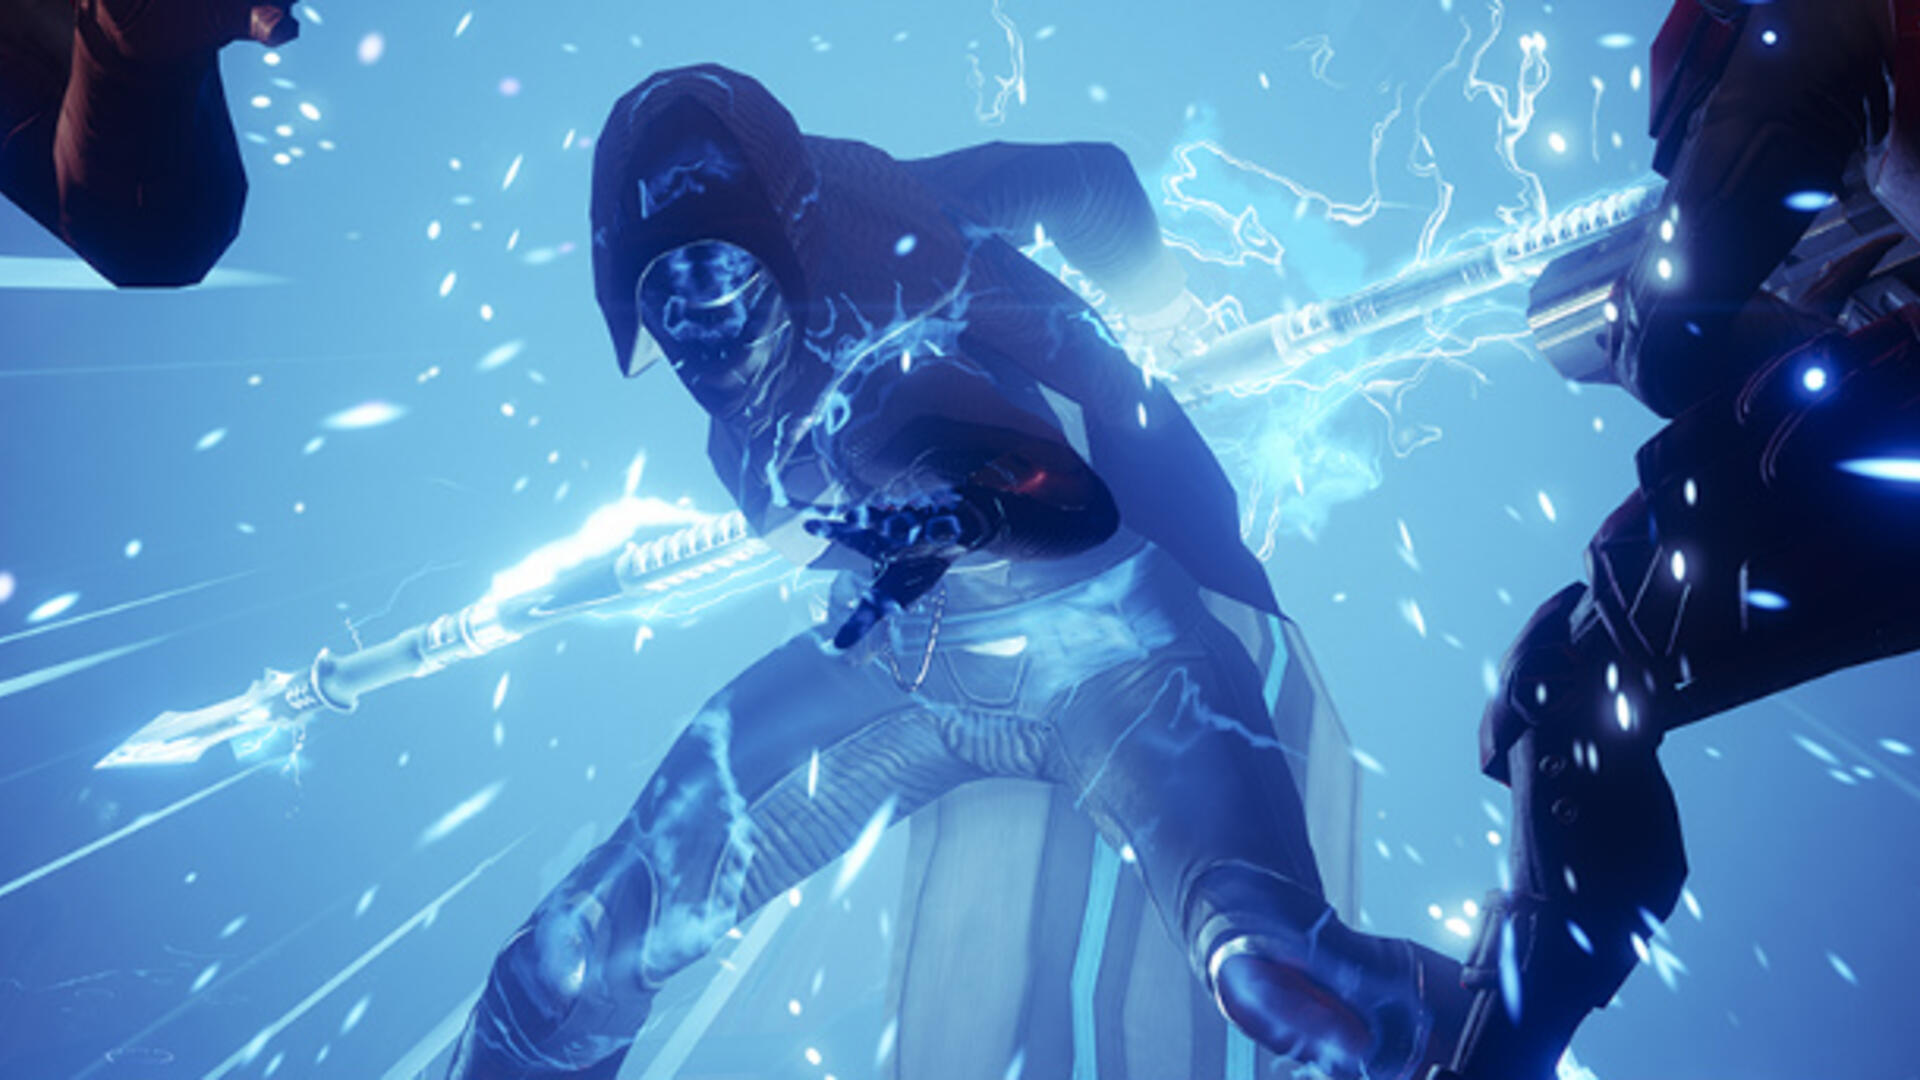 Destiny 2 Reaches 1.2 Million Concurrent Players, But UK Physical Sales Are Down